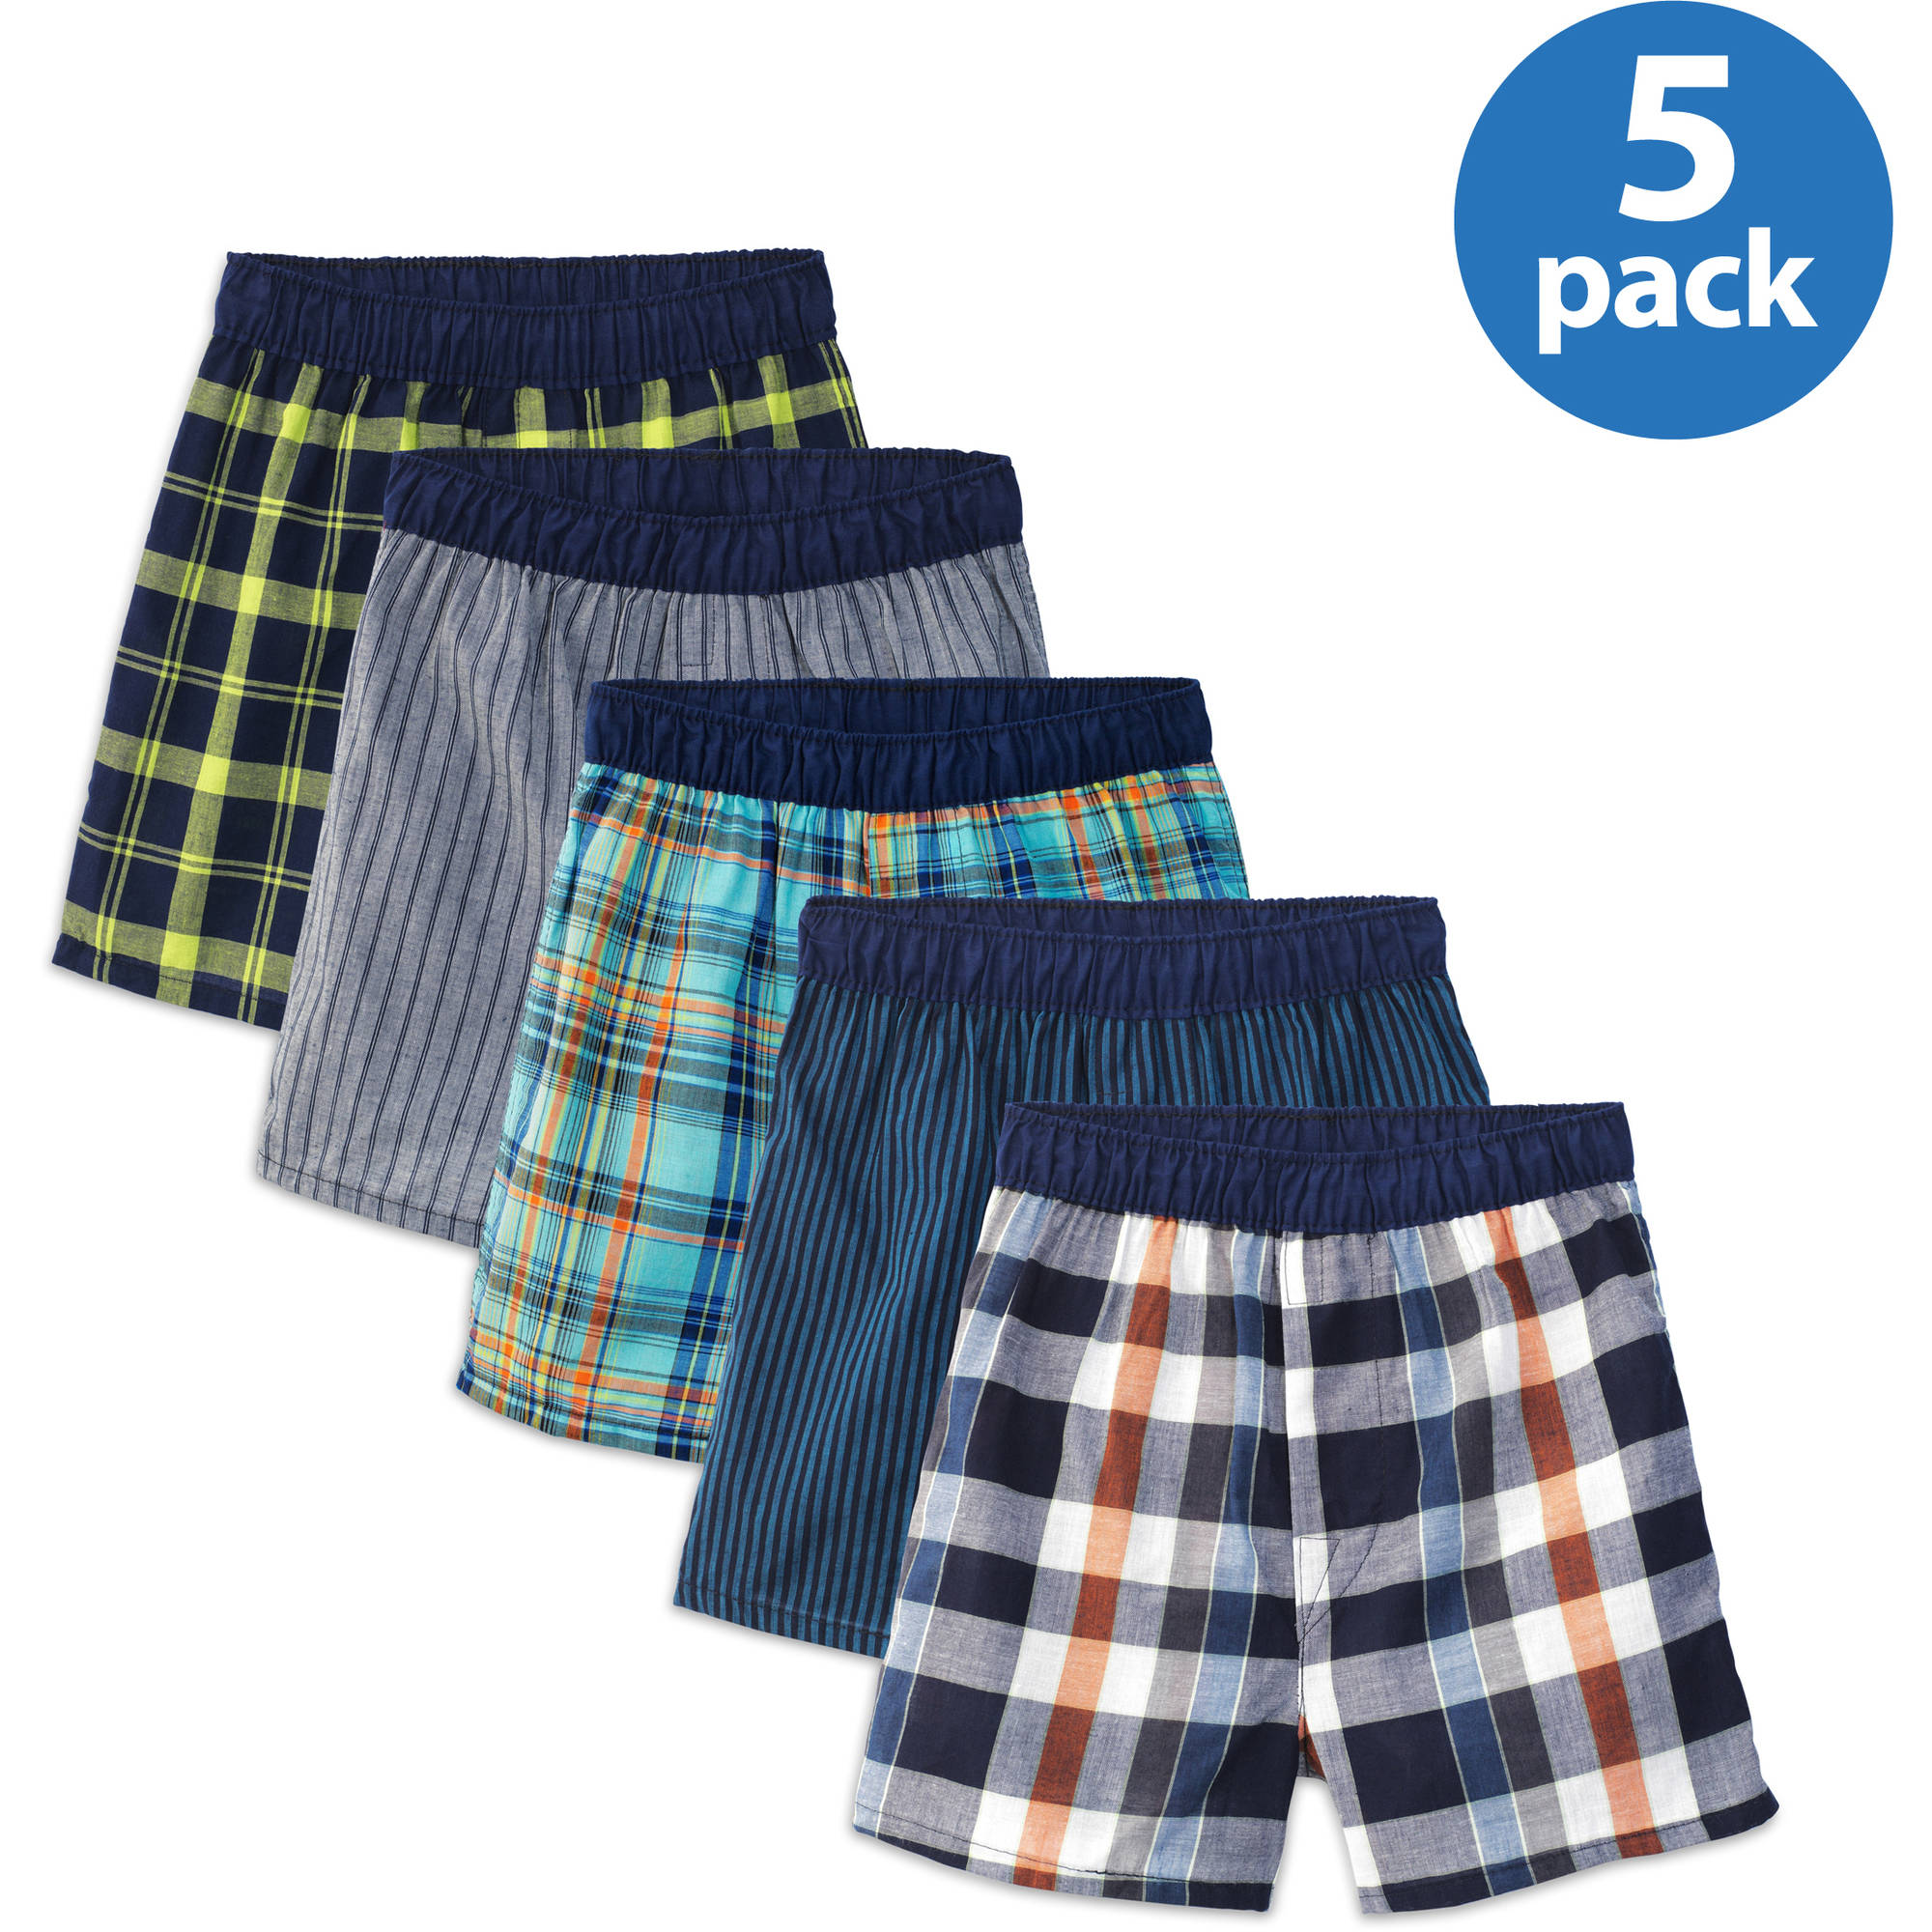 Fruit of the Loom Boys' Assorted Covered Waistband Boxers, 5 Pack